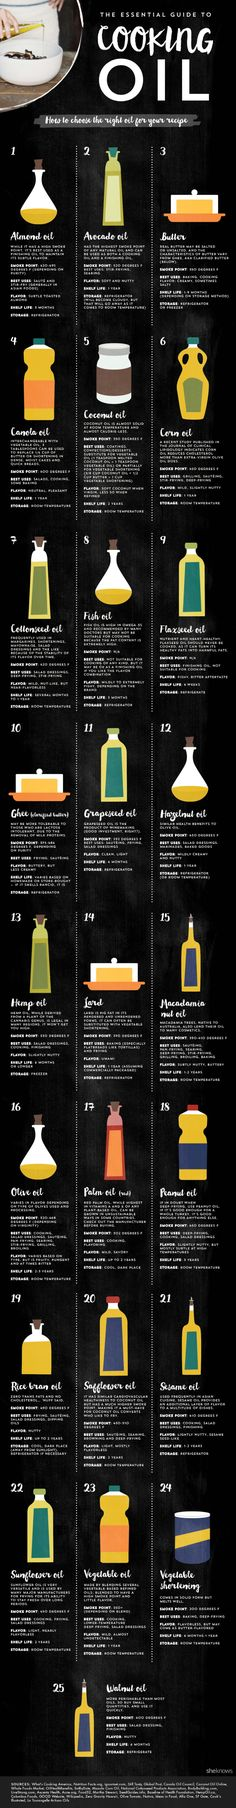 essential guide to cooking oil infographic. Tips on how to choose the right cooking oil for your recipe.The essential guide to cooking oil infographic. Tips on how to choose the right cooking oil for your recipe. Types Of Cooking Oil, Cooking 101, Healthy Cooking, Cooking Recipes, Healthy Recipes, Cooking Videos, Cooking Hacks, Cooking Classes, Cooking Light